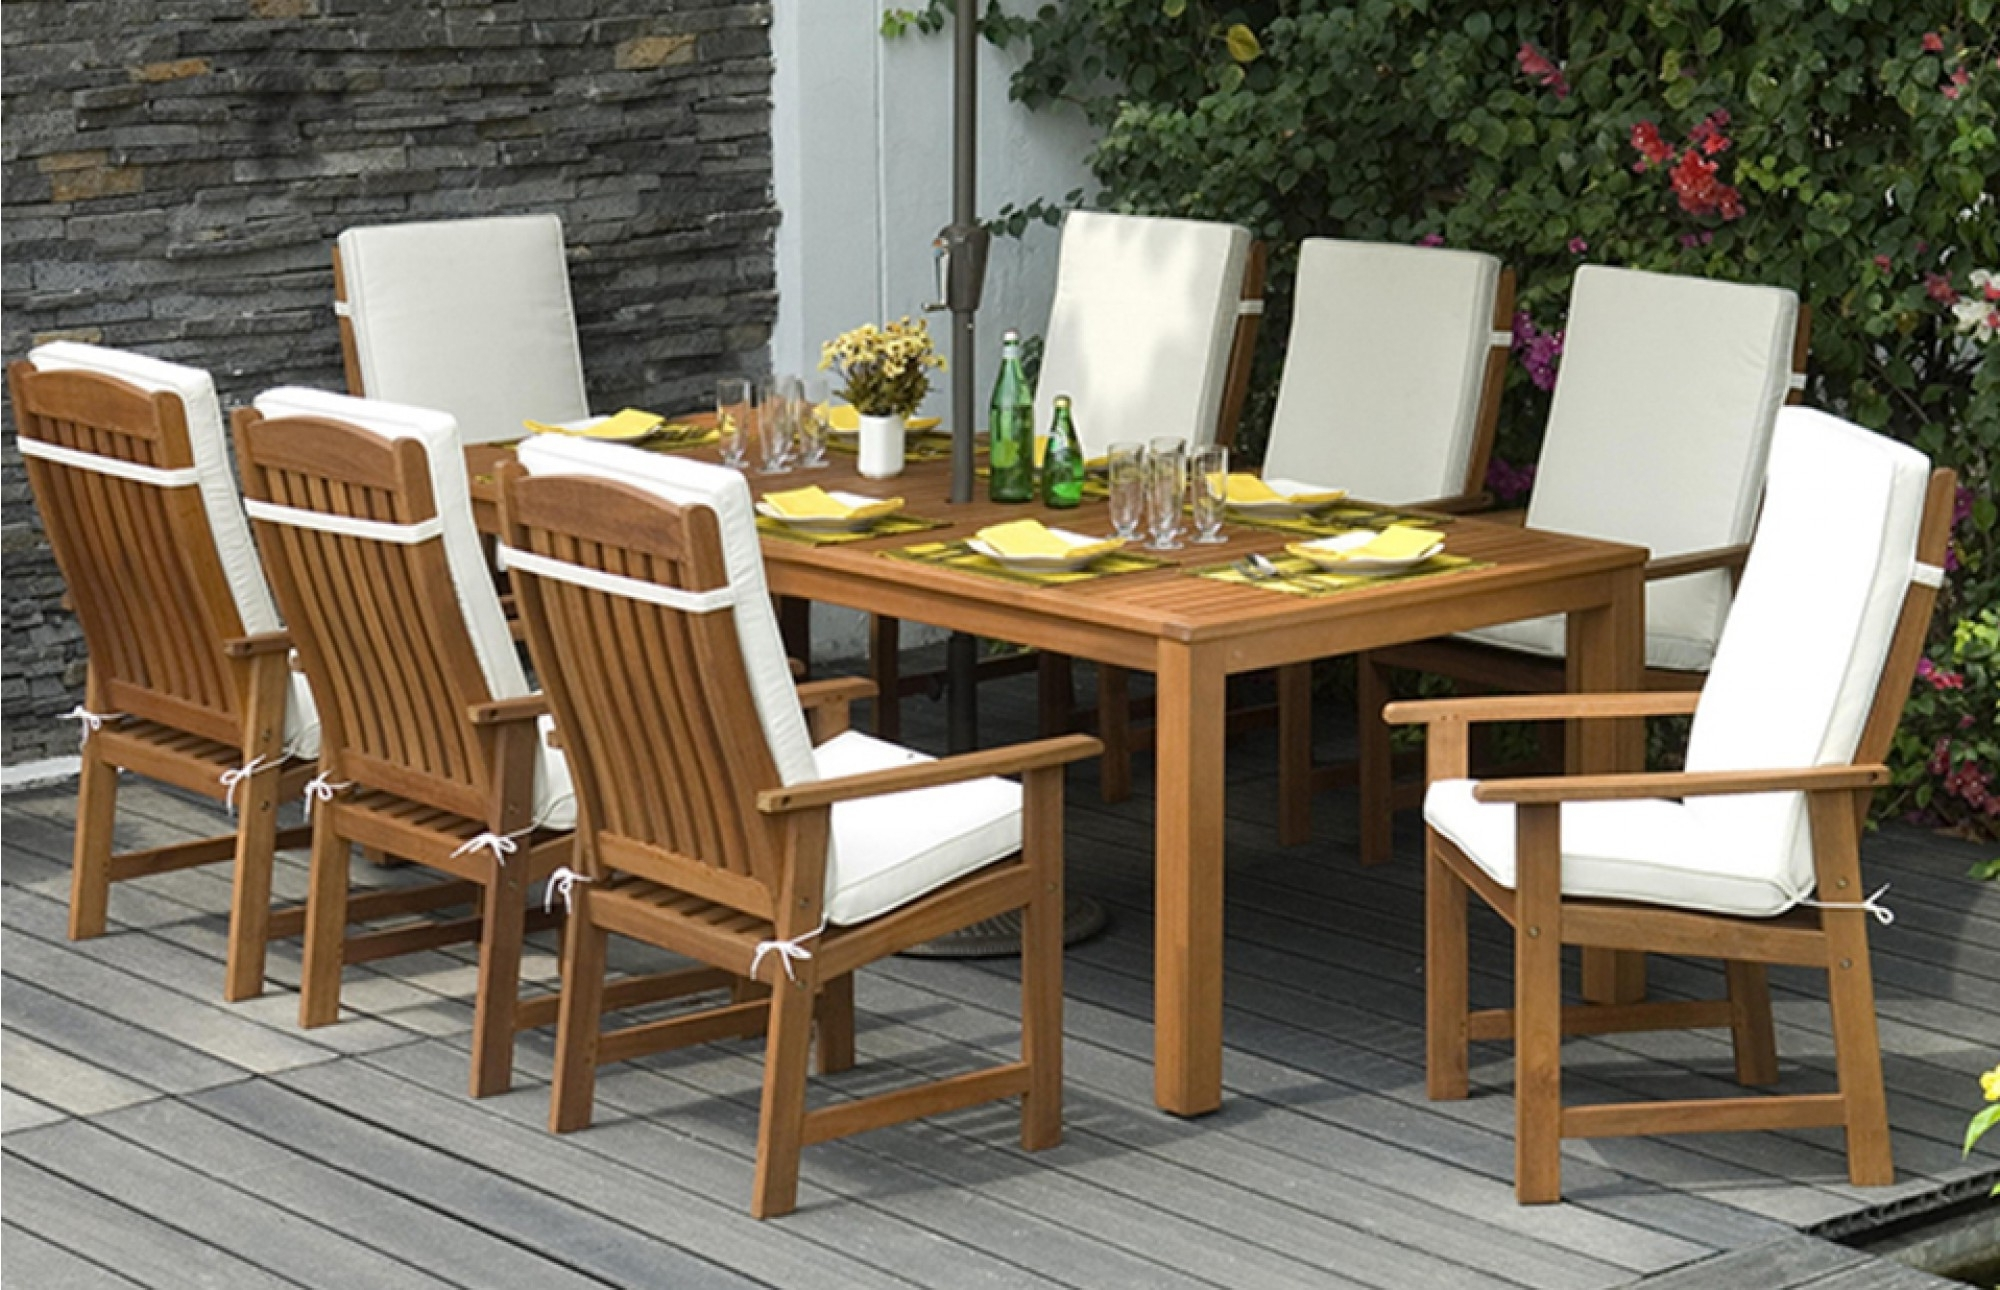 8 Seat Outdoor Dining Tables regarding Widely used Patio: Marvellous Wooden Patio Set Outdoor Furniture Wood Types